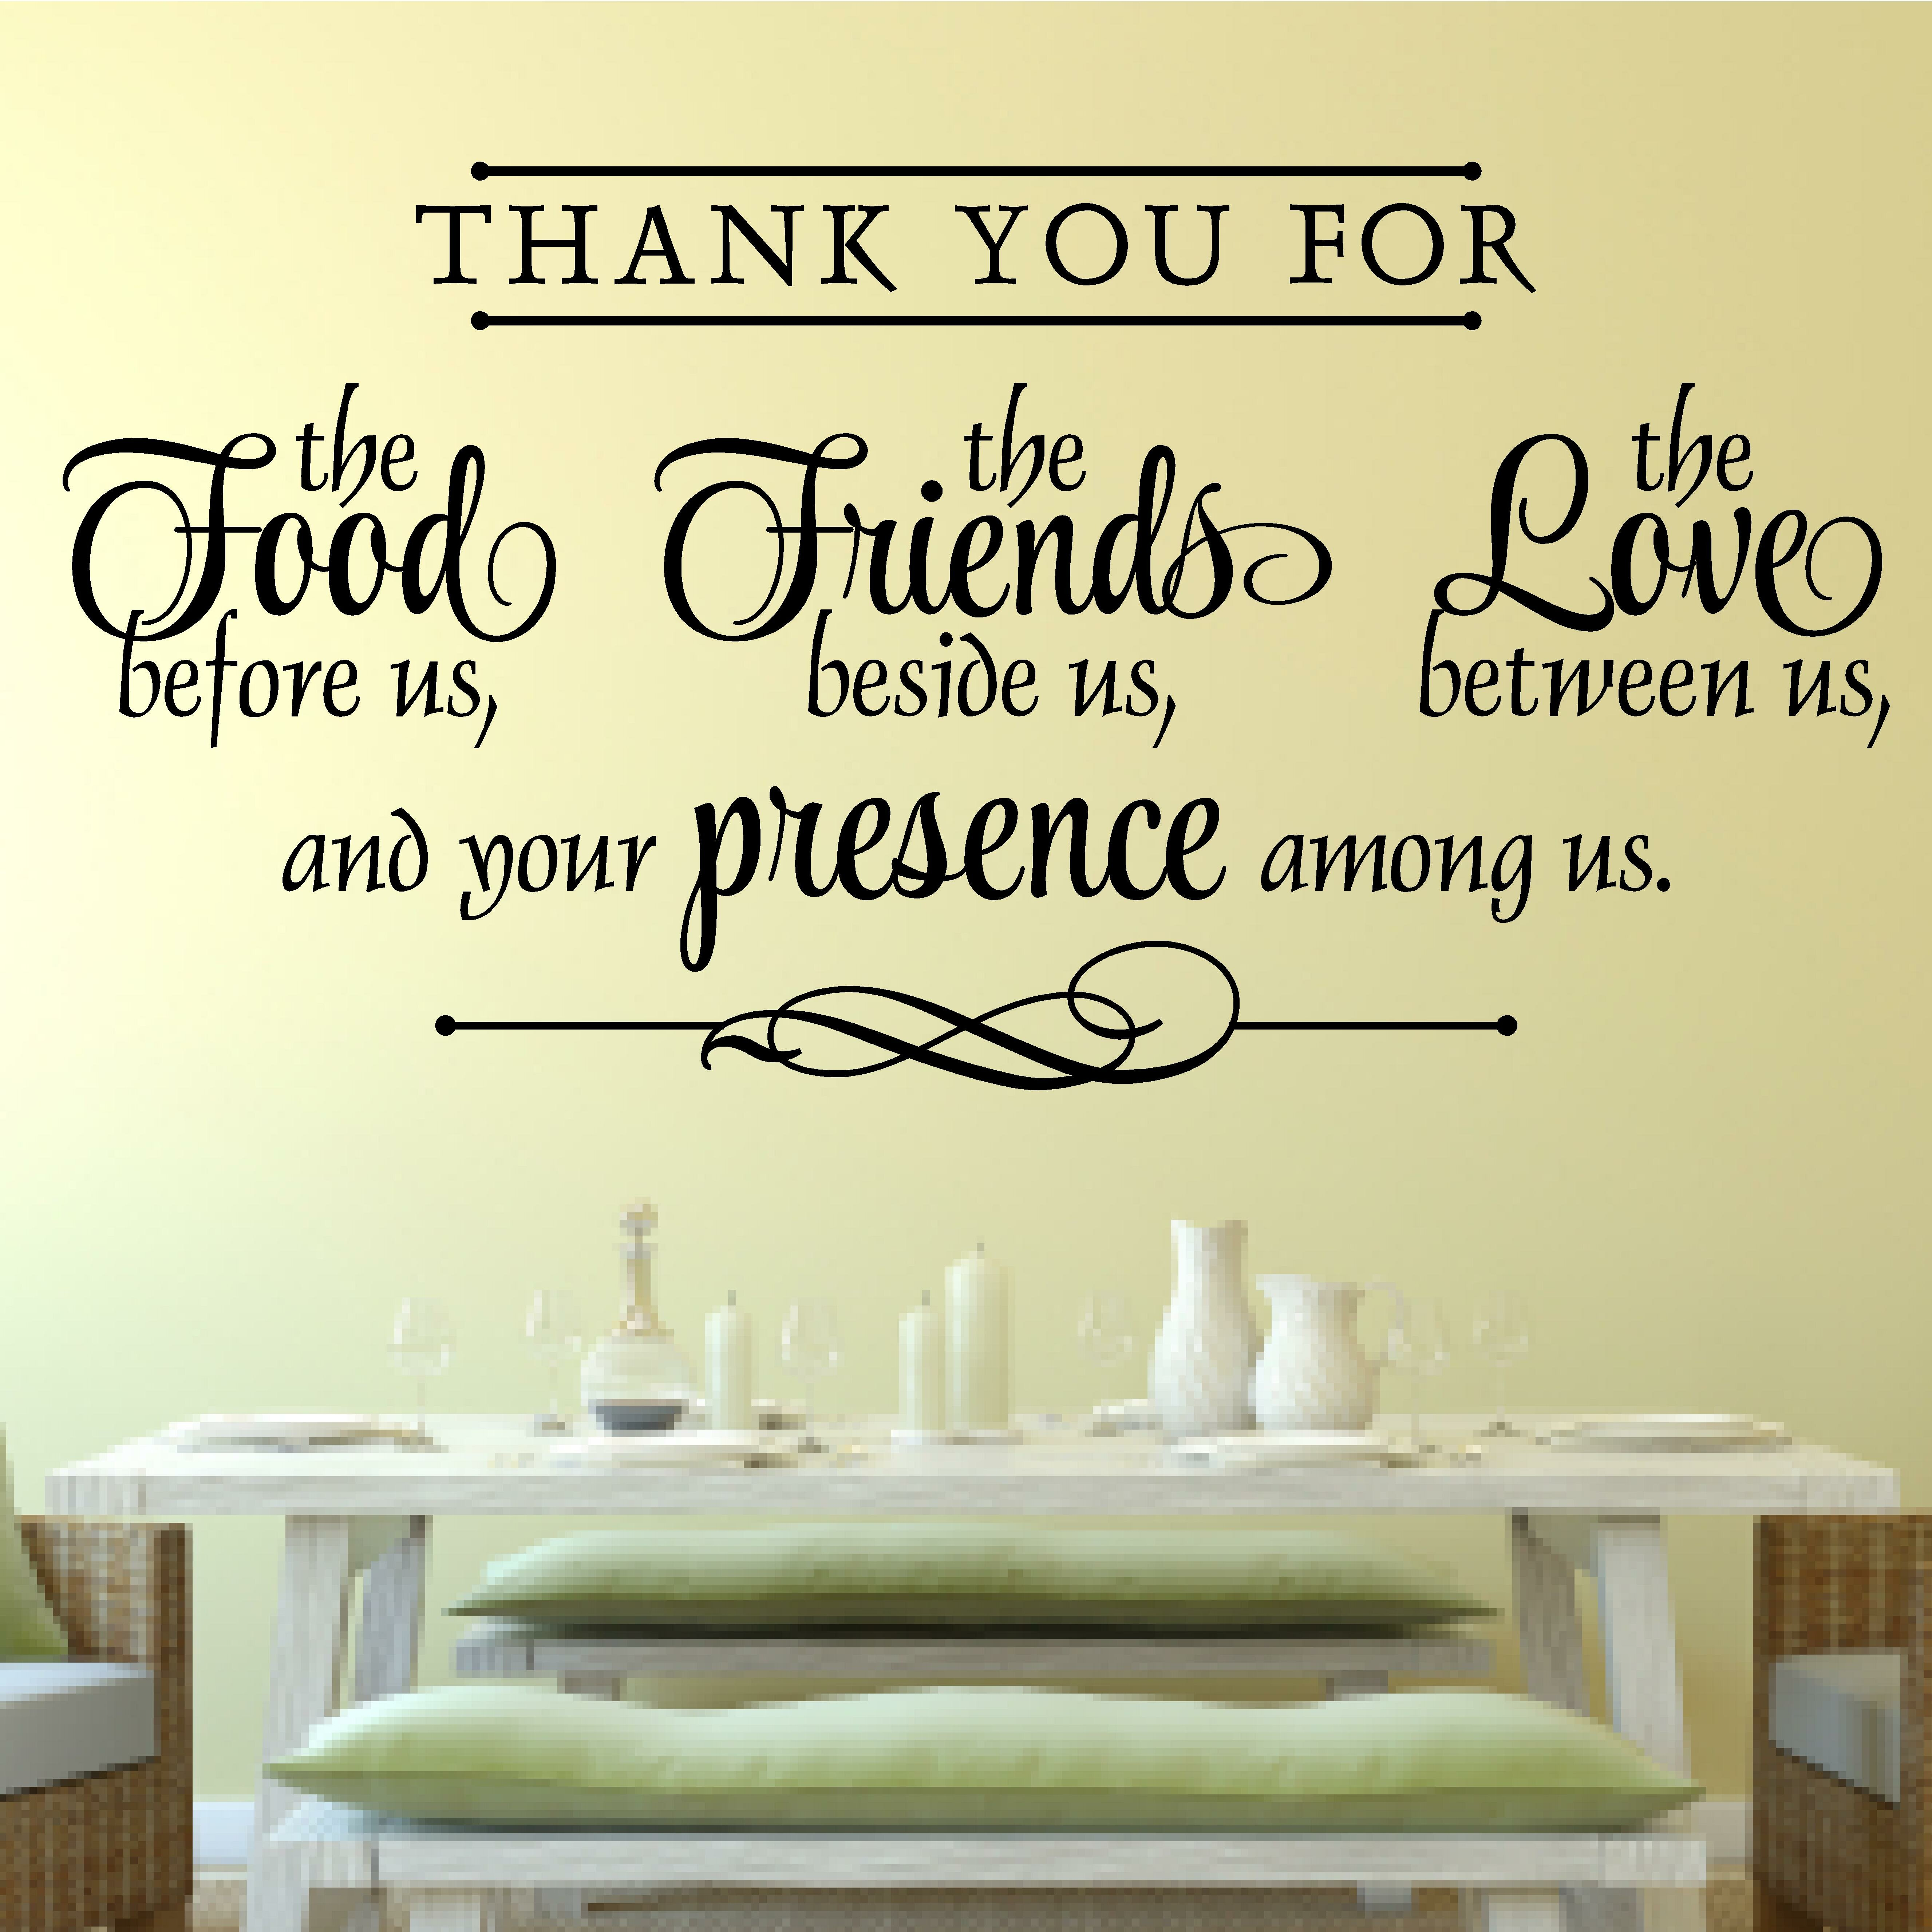 Enchantingly Elegant Thank You for Food Friends Love Religious Decor ...